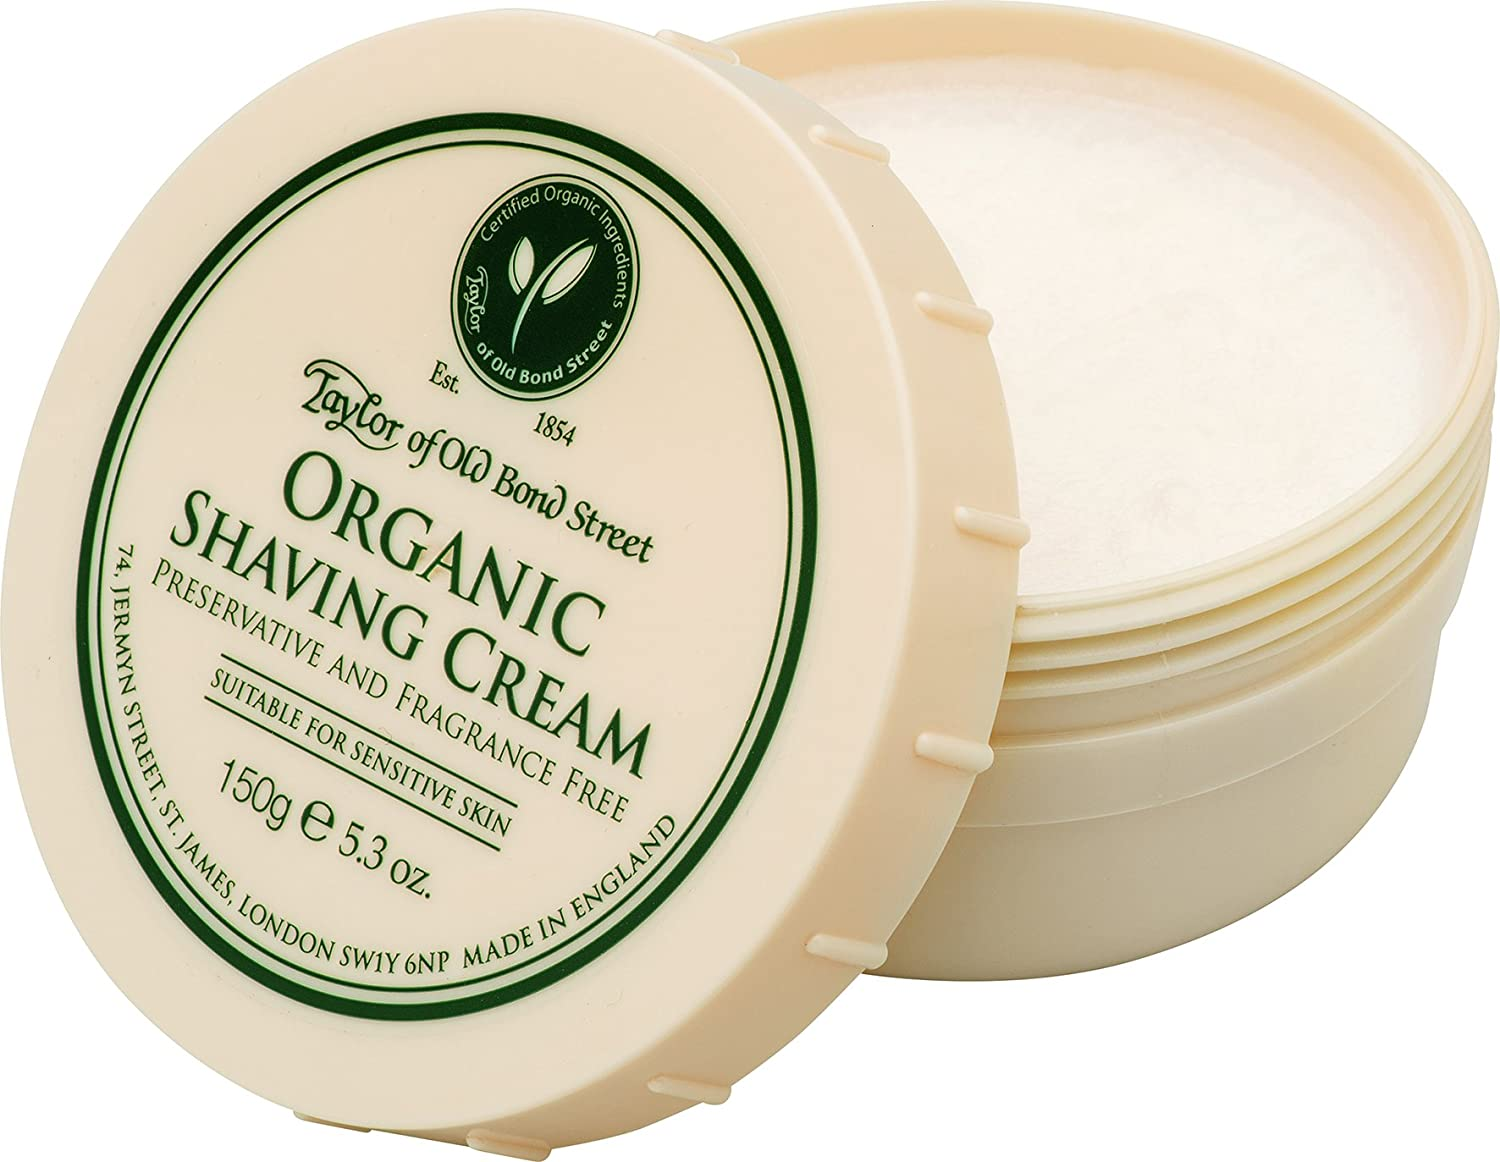 Shaving Cream Organic Shaving Cream, 150g - Taylor of Old Bond Street 45111